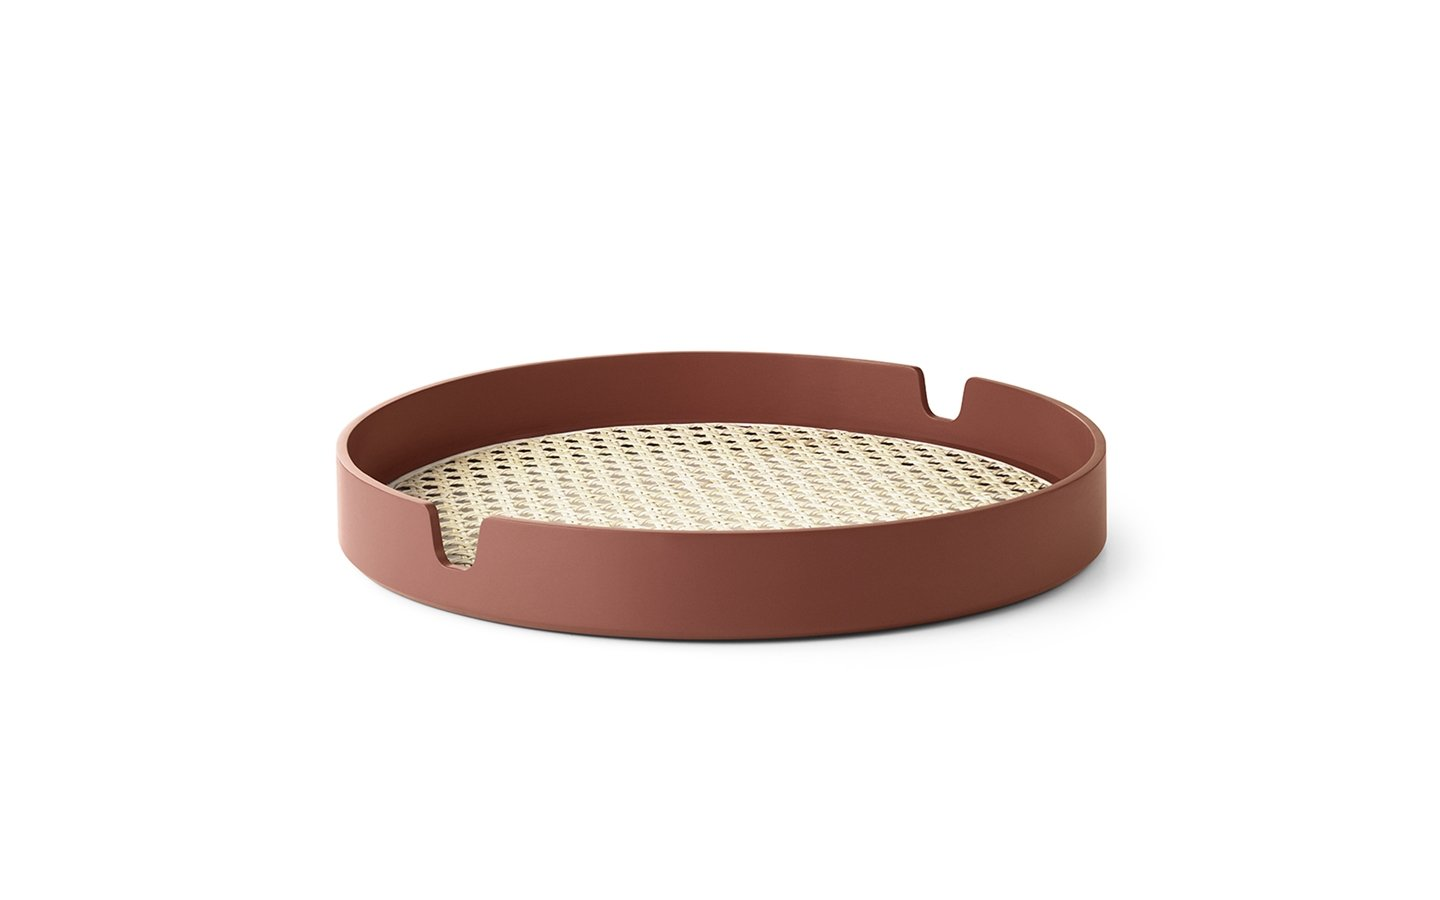 Normann Copenhagen Salon Tray Medium Rust